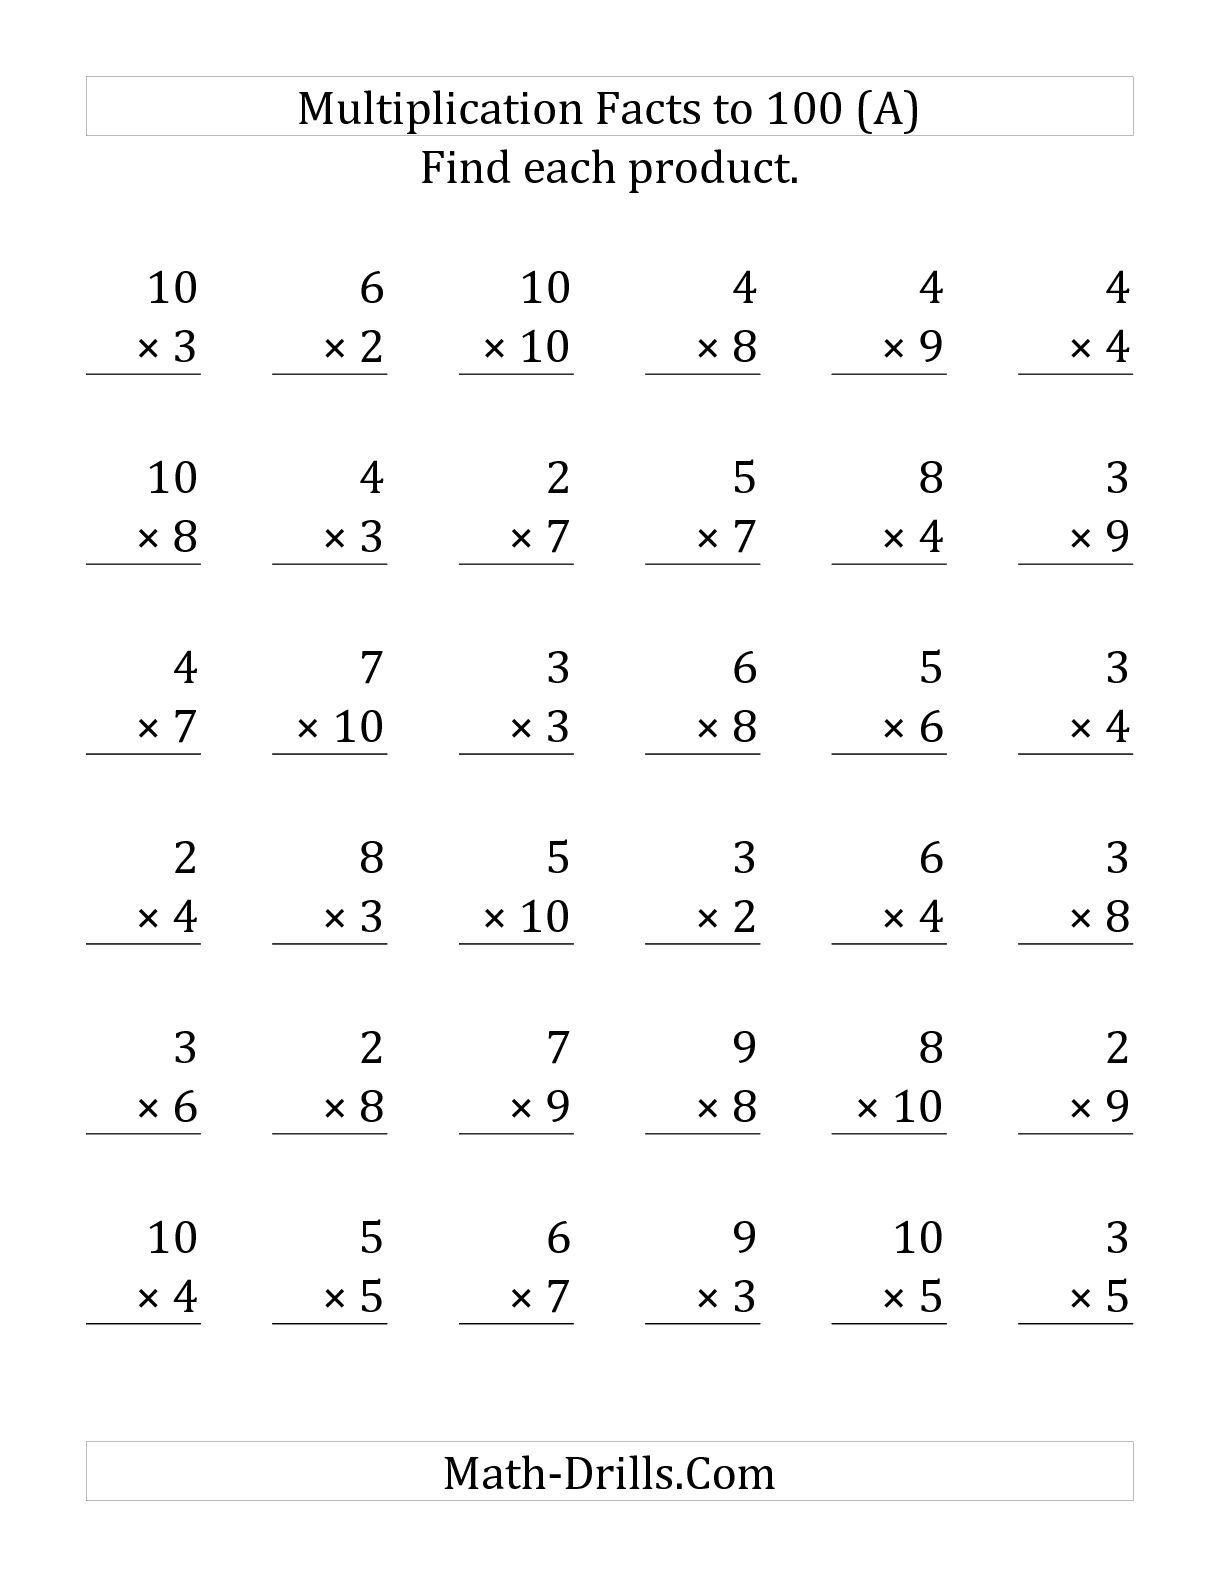 The Multiplication Facts To 100 No Zeros Or Ones 36 Questions Per Page A Math Worksheet From